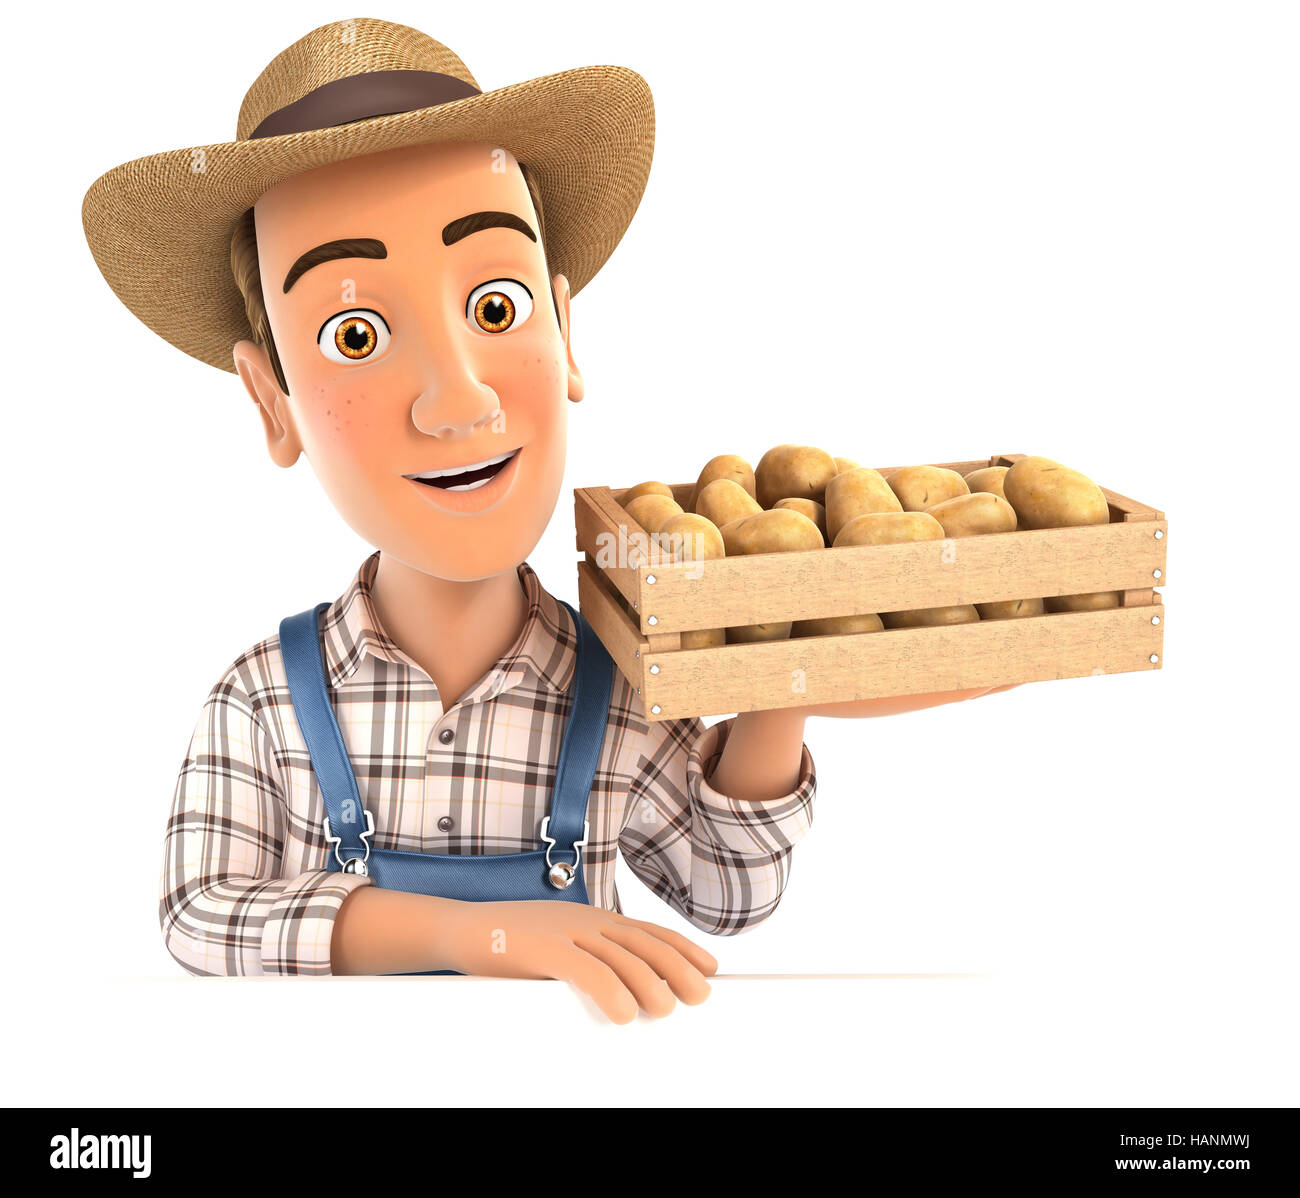 3d farmer holding wooden crate of potatoes, illustration with isolated white background Stock Photo